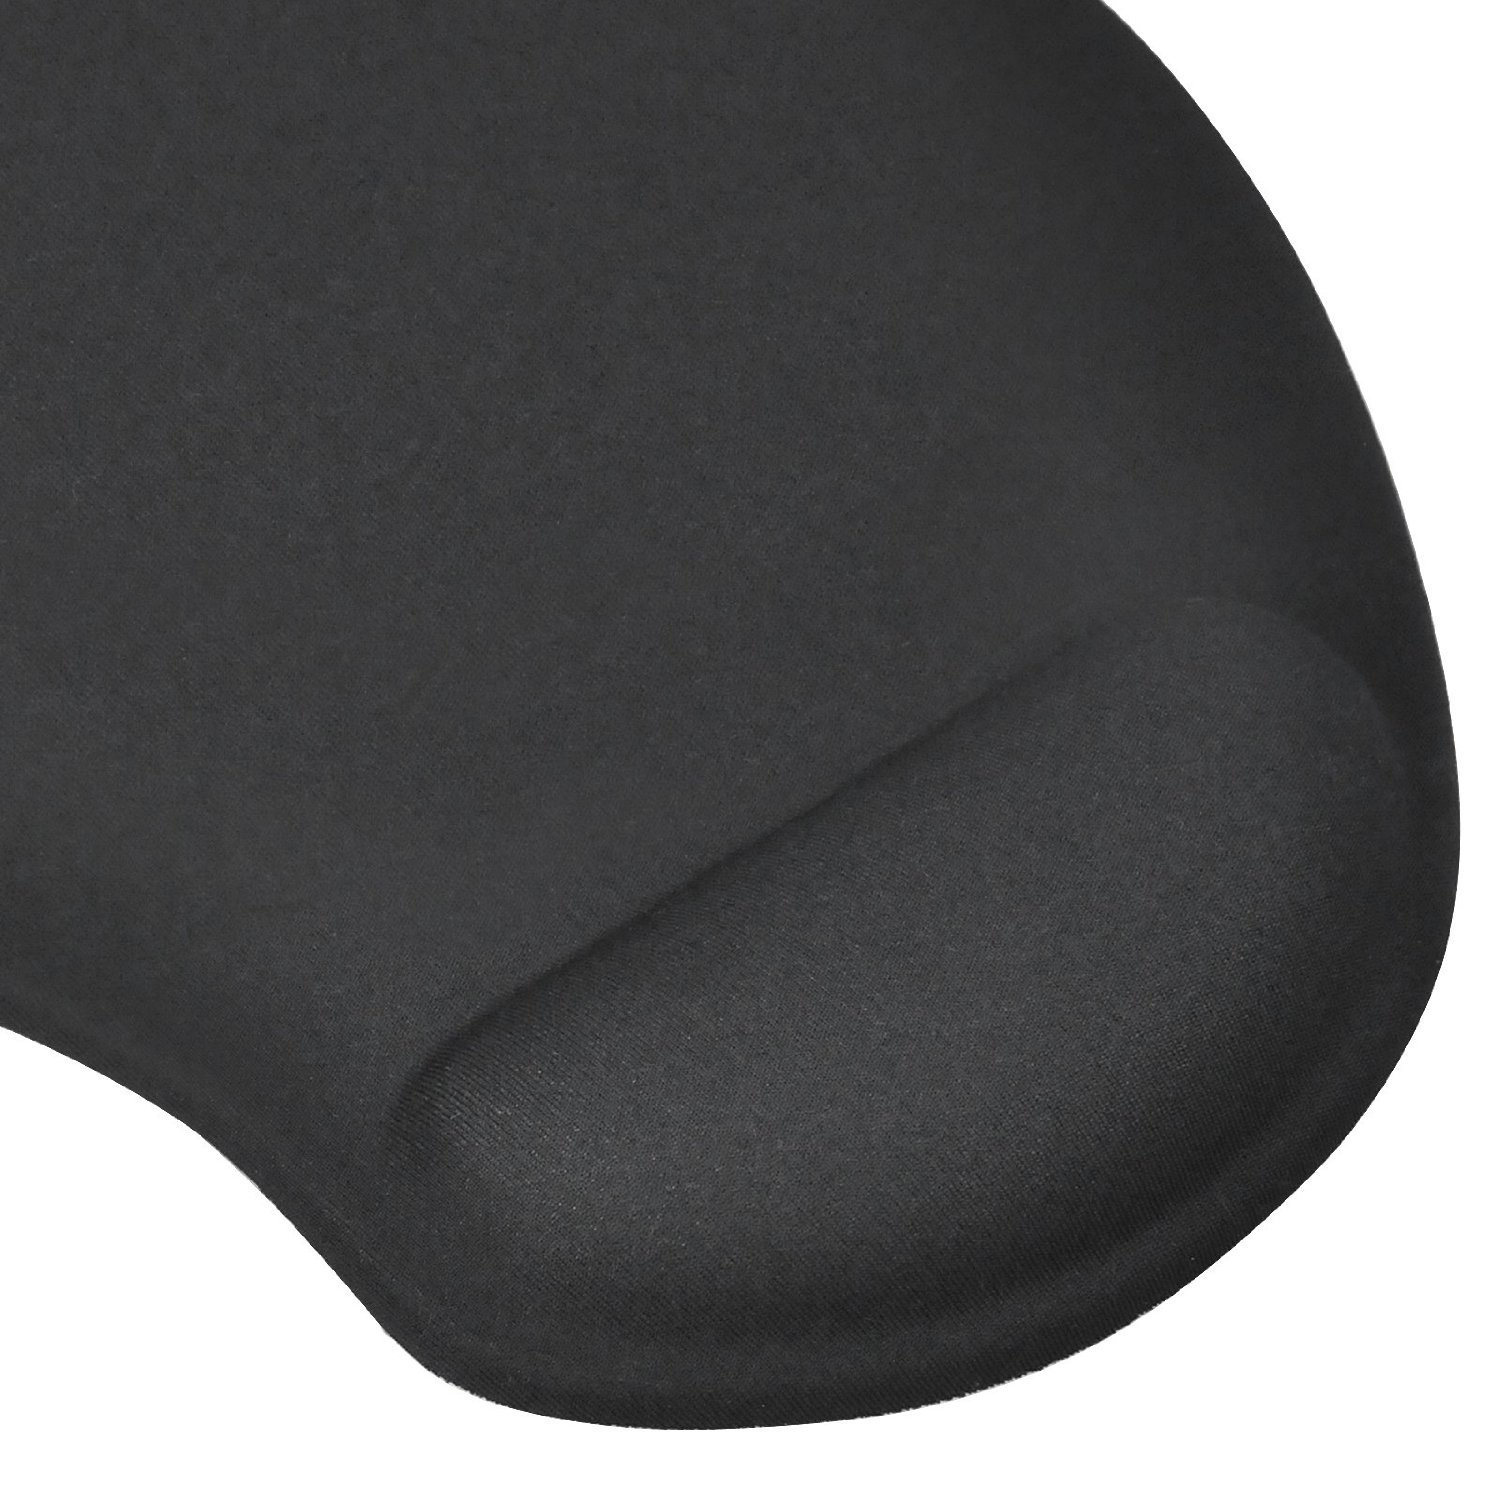 Lifeyz Mouse Pad Anti-slip Comfort Mouse Mat with Gel Wrist PC Rest Support for Laptop PC Wrist (Negro) b5bb14